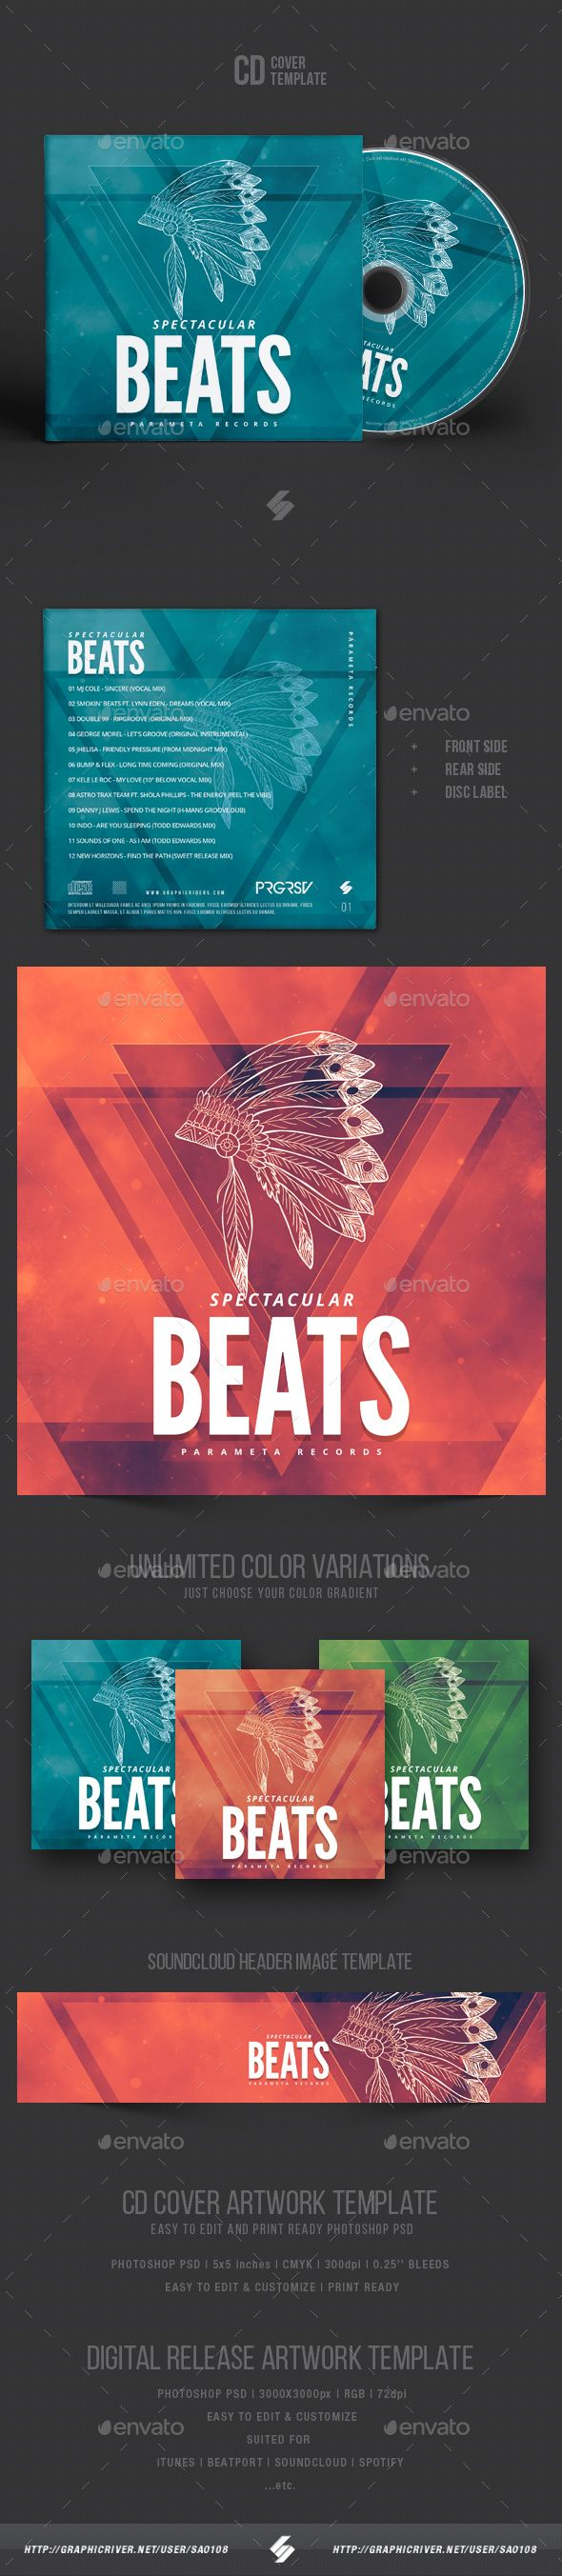 Spectacular Beats  CD Cover Artwork Template — Photoshop PSD #soundcloud #label • Download ➝ https://graphicriver.net/item/spectacular-beats-cd-cover-artwork-template/19937542?ref=pxcr